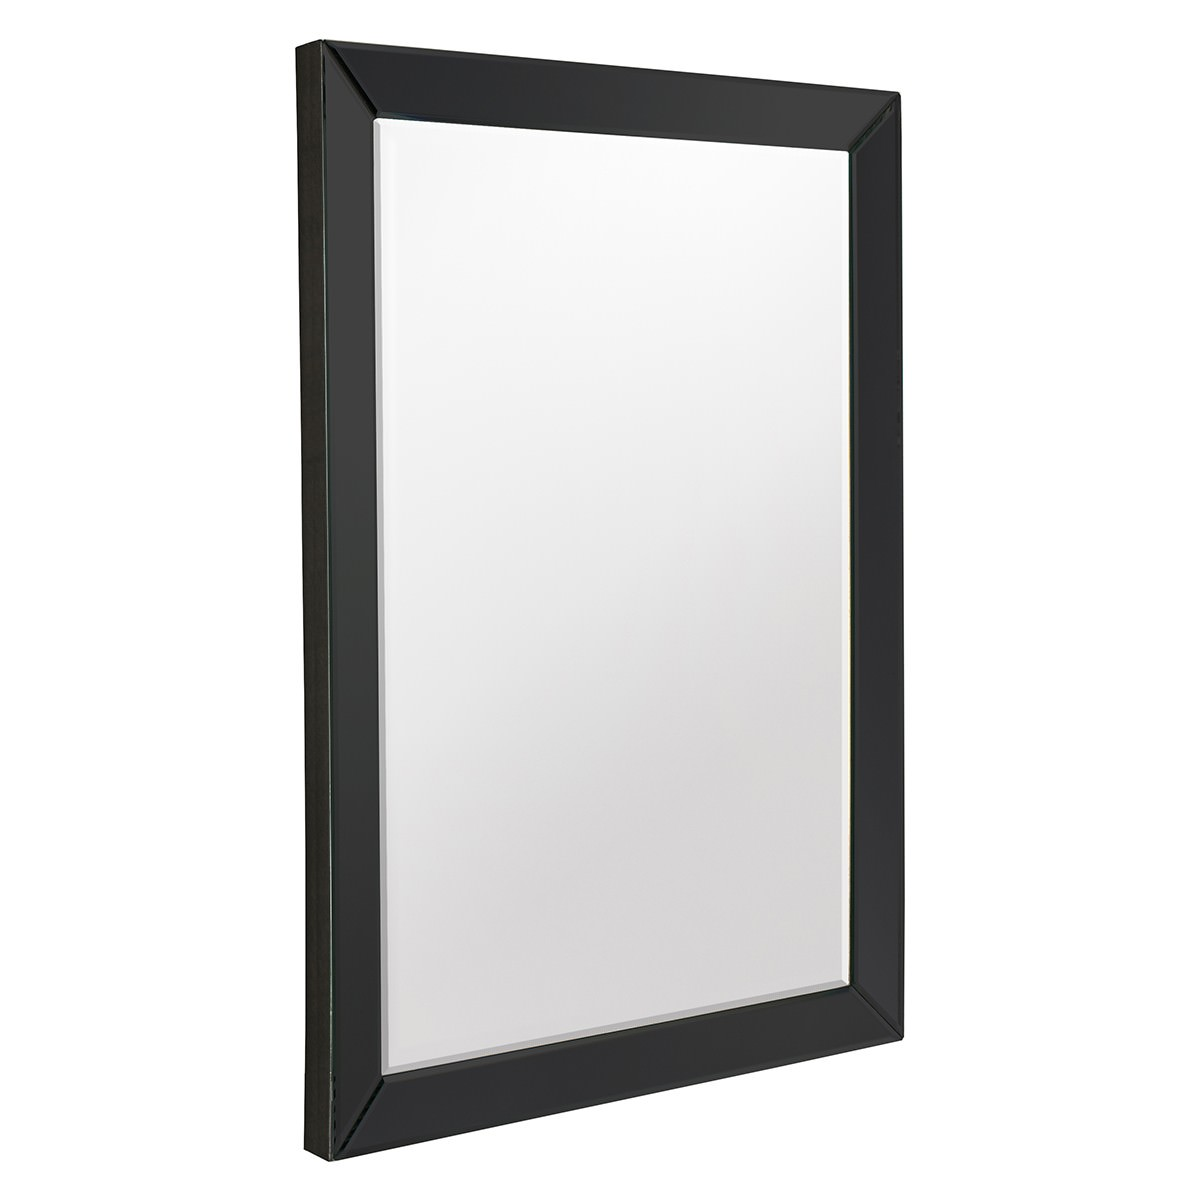 LibbyWall Mirror, 91.5cm, Black